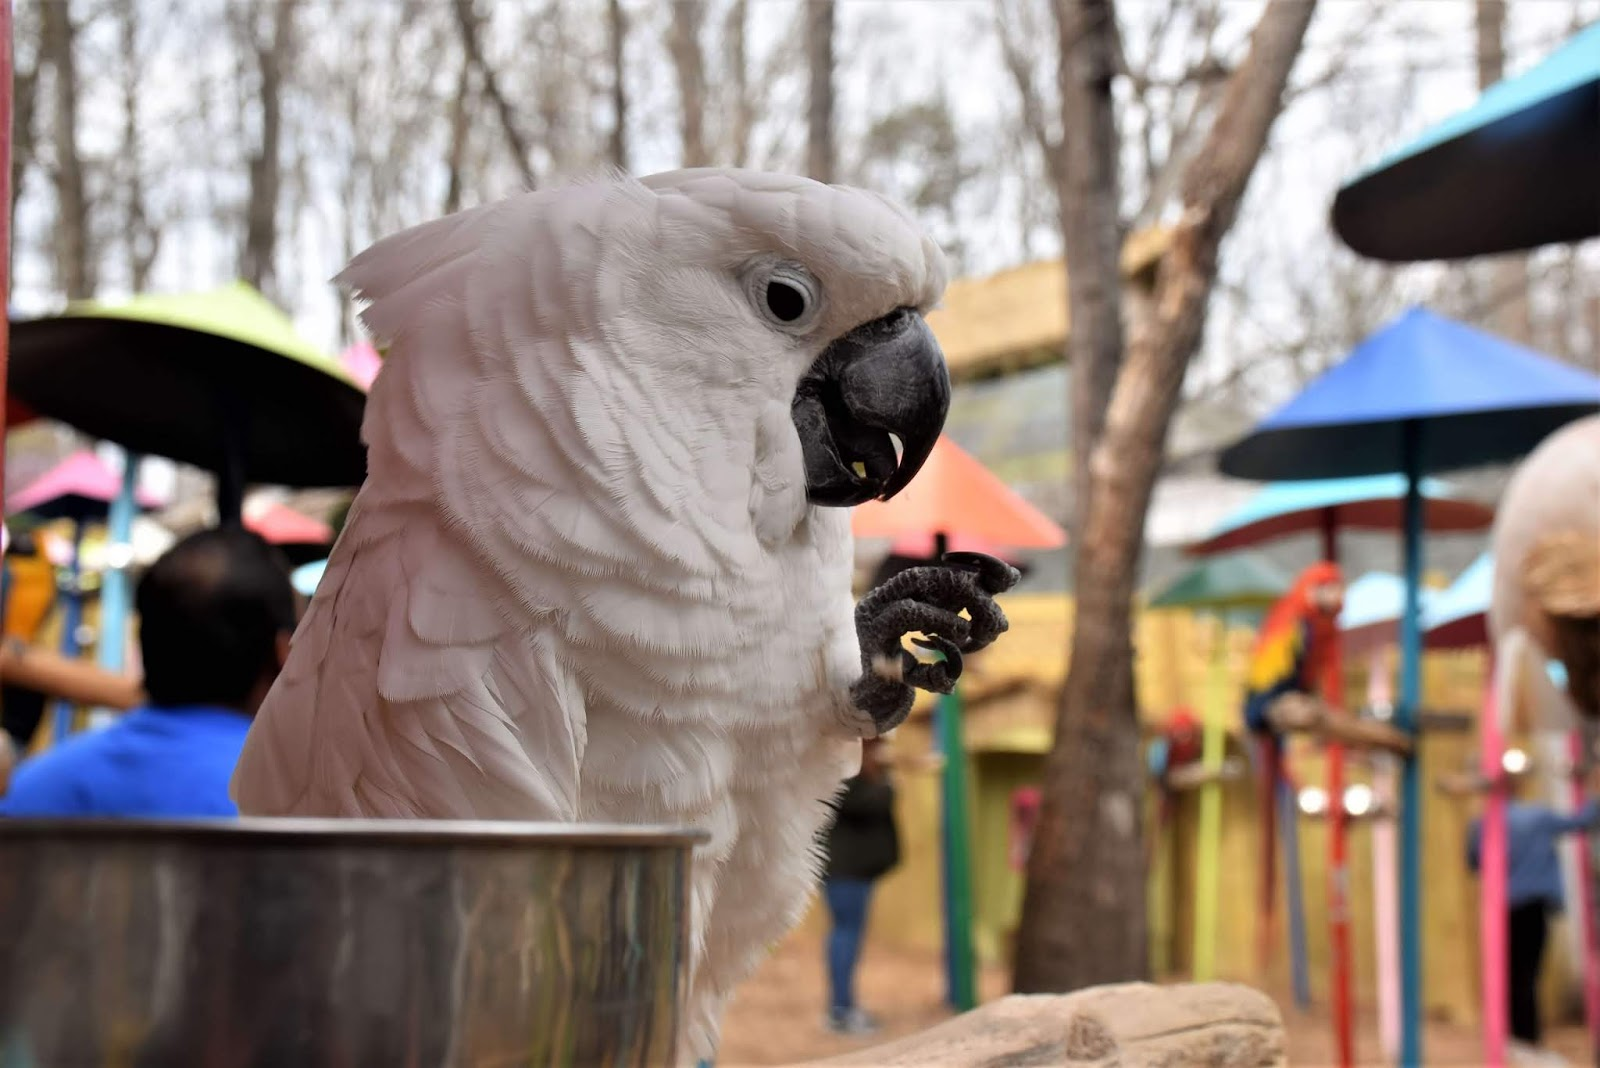 Parrot eating at Parrot Mountain